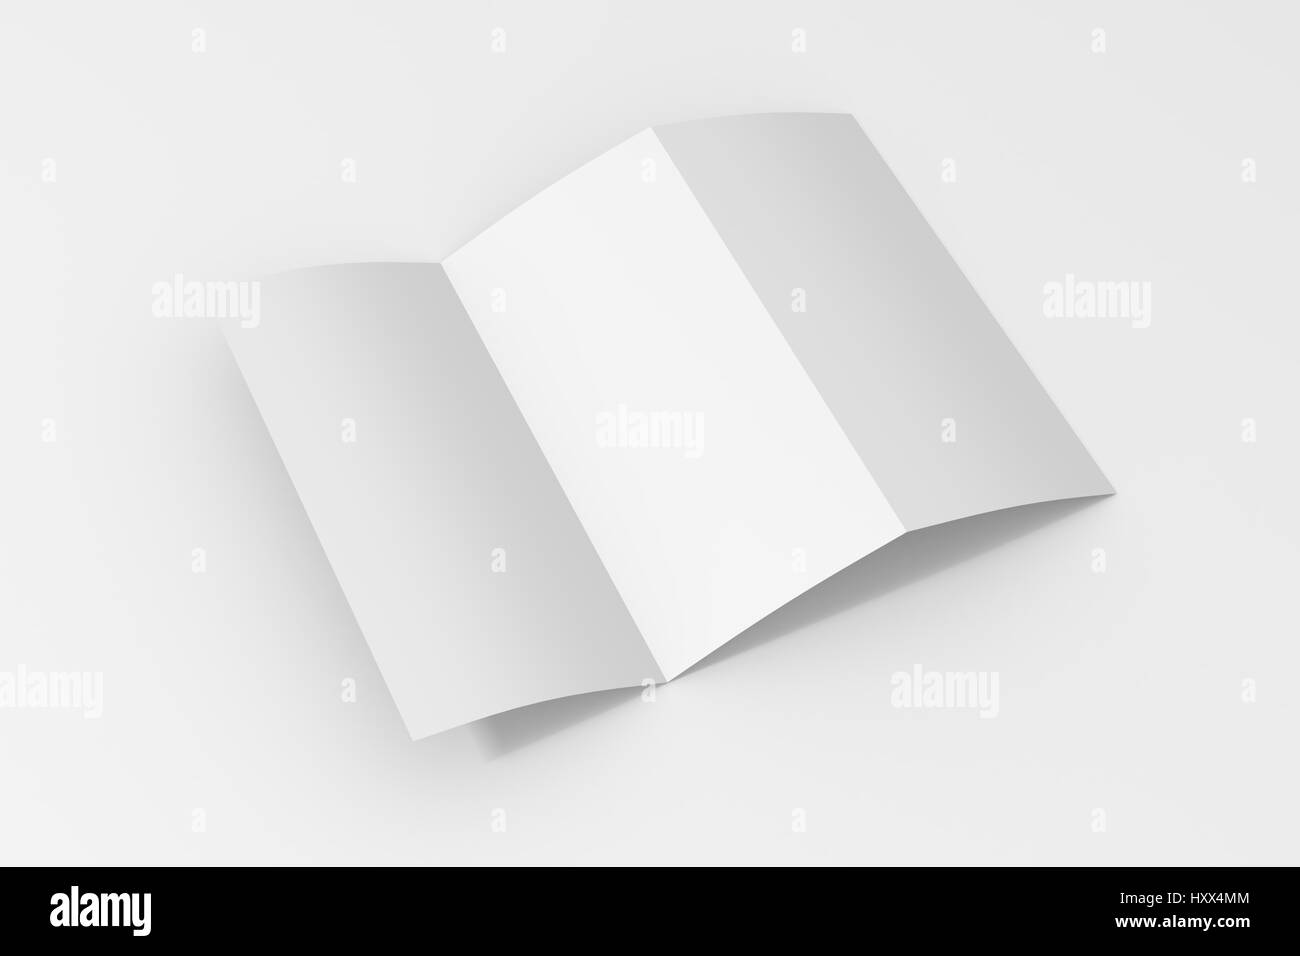 Trifold brochure template design Photo Royalty Free Image – Blank Tri Fold Brochure Template